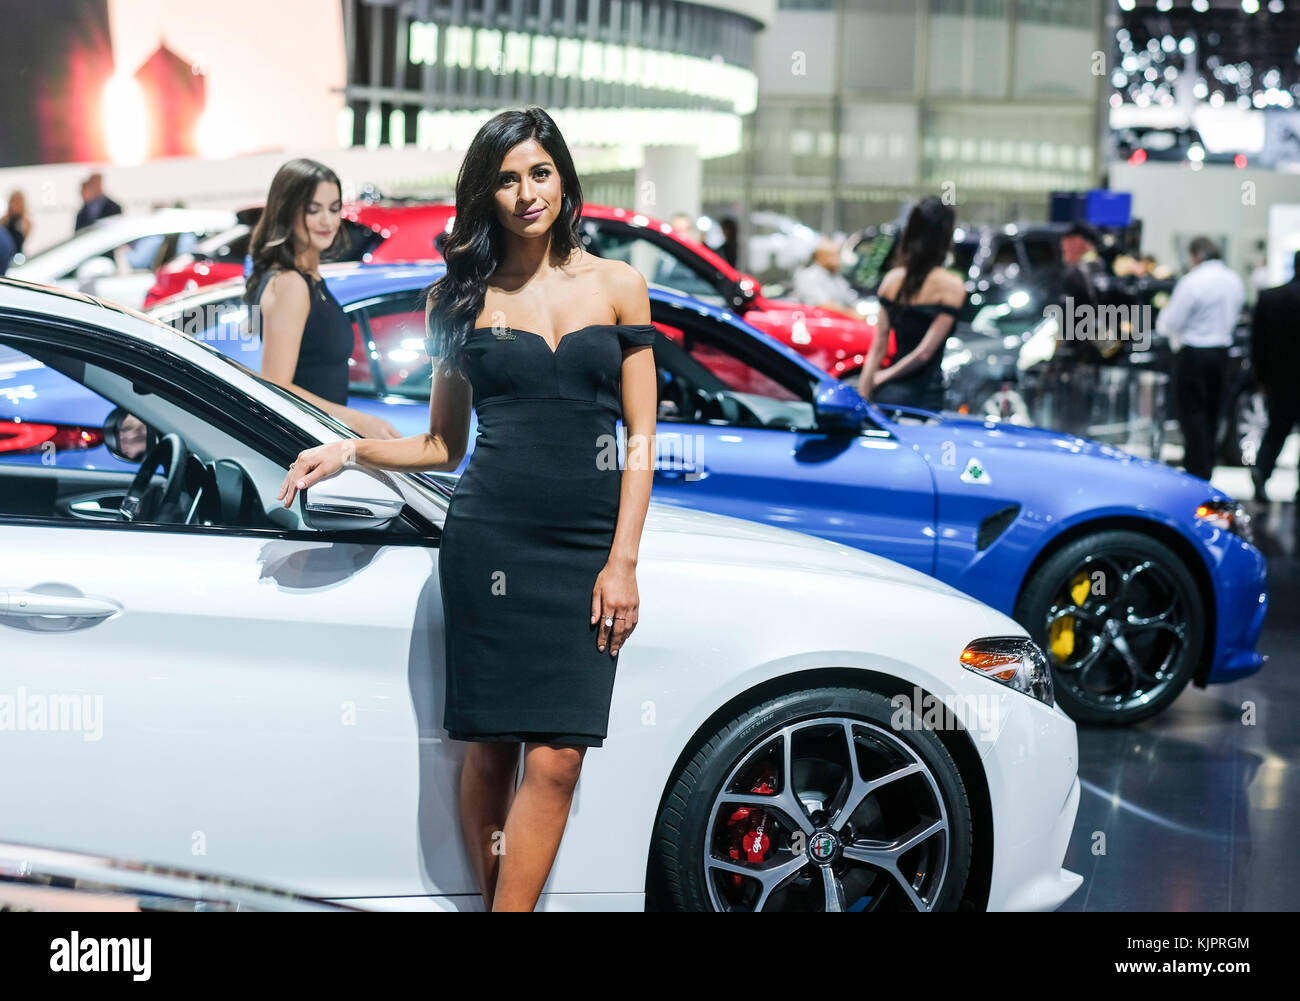 Alfa Romeo Los Angeles >> Los Angeles Usa 29th Nov 2017 A Model Poses Next To An Alfa